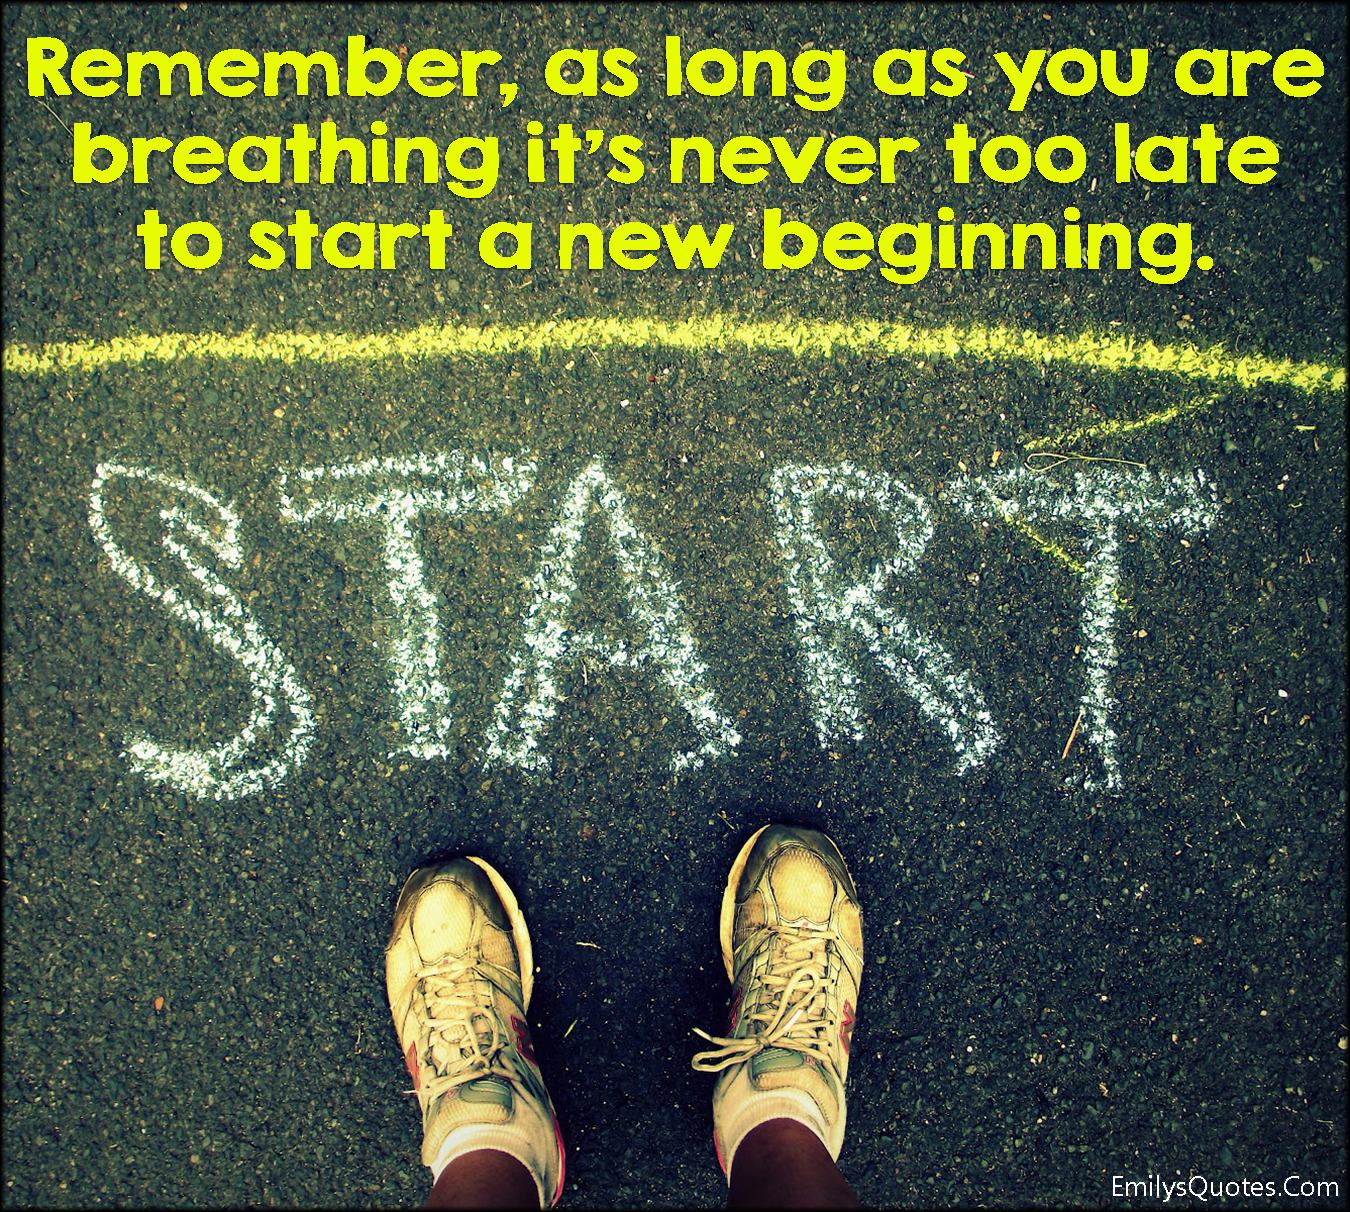 EmilysQuotes.Com - remember, breathing, too late, new beginning, amazing, great, inspirational, motivational, attitude, encouraging, unknown